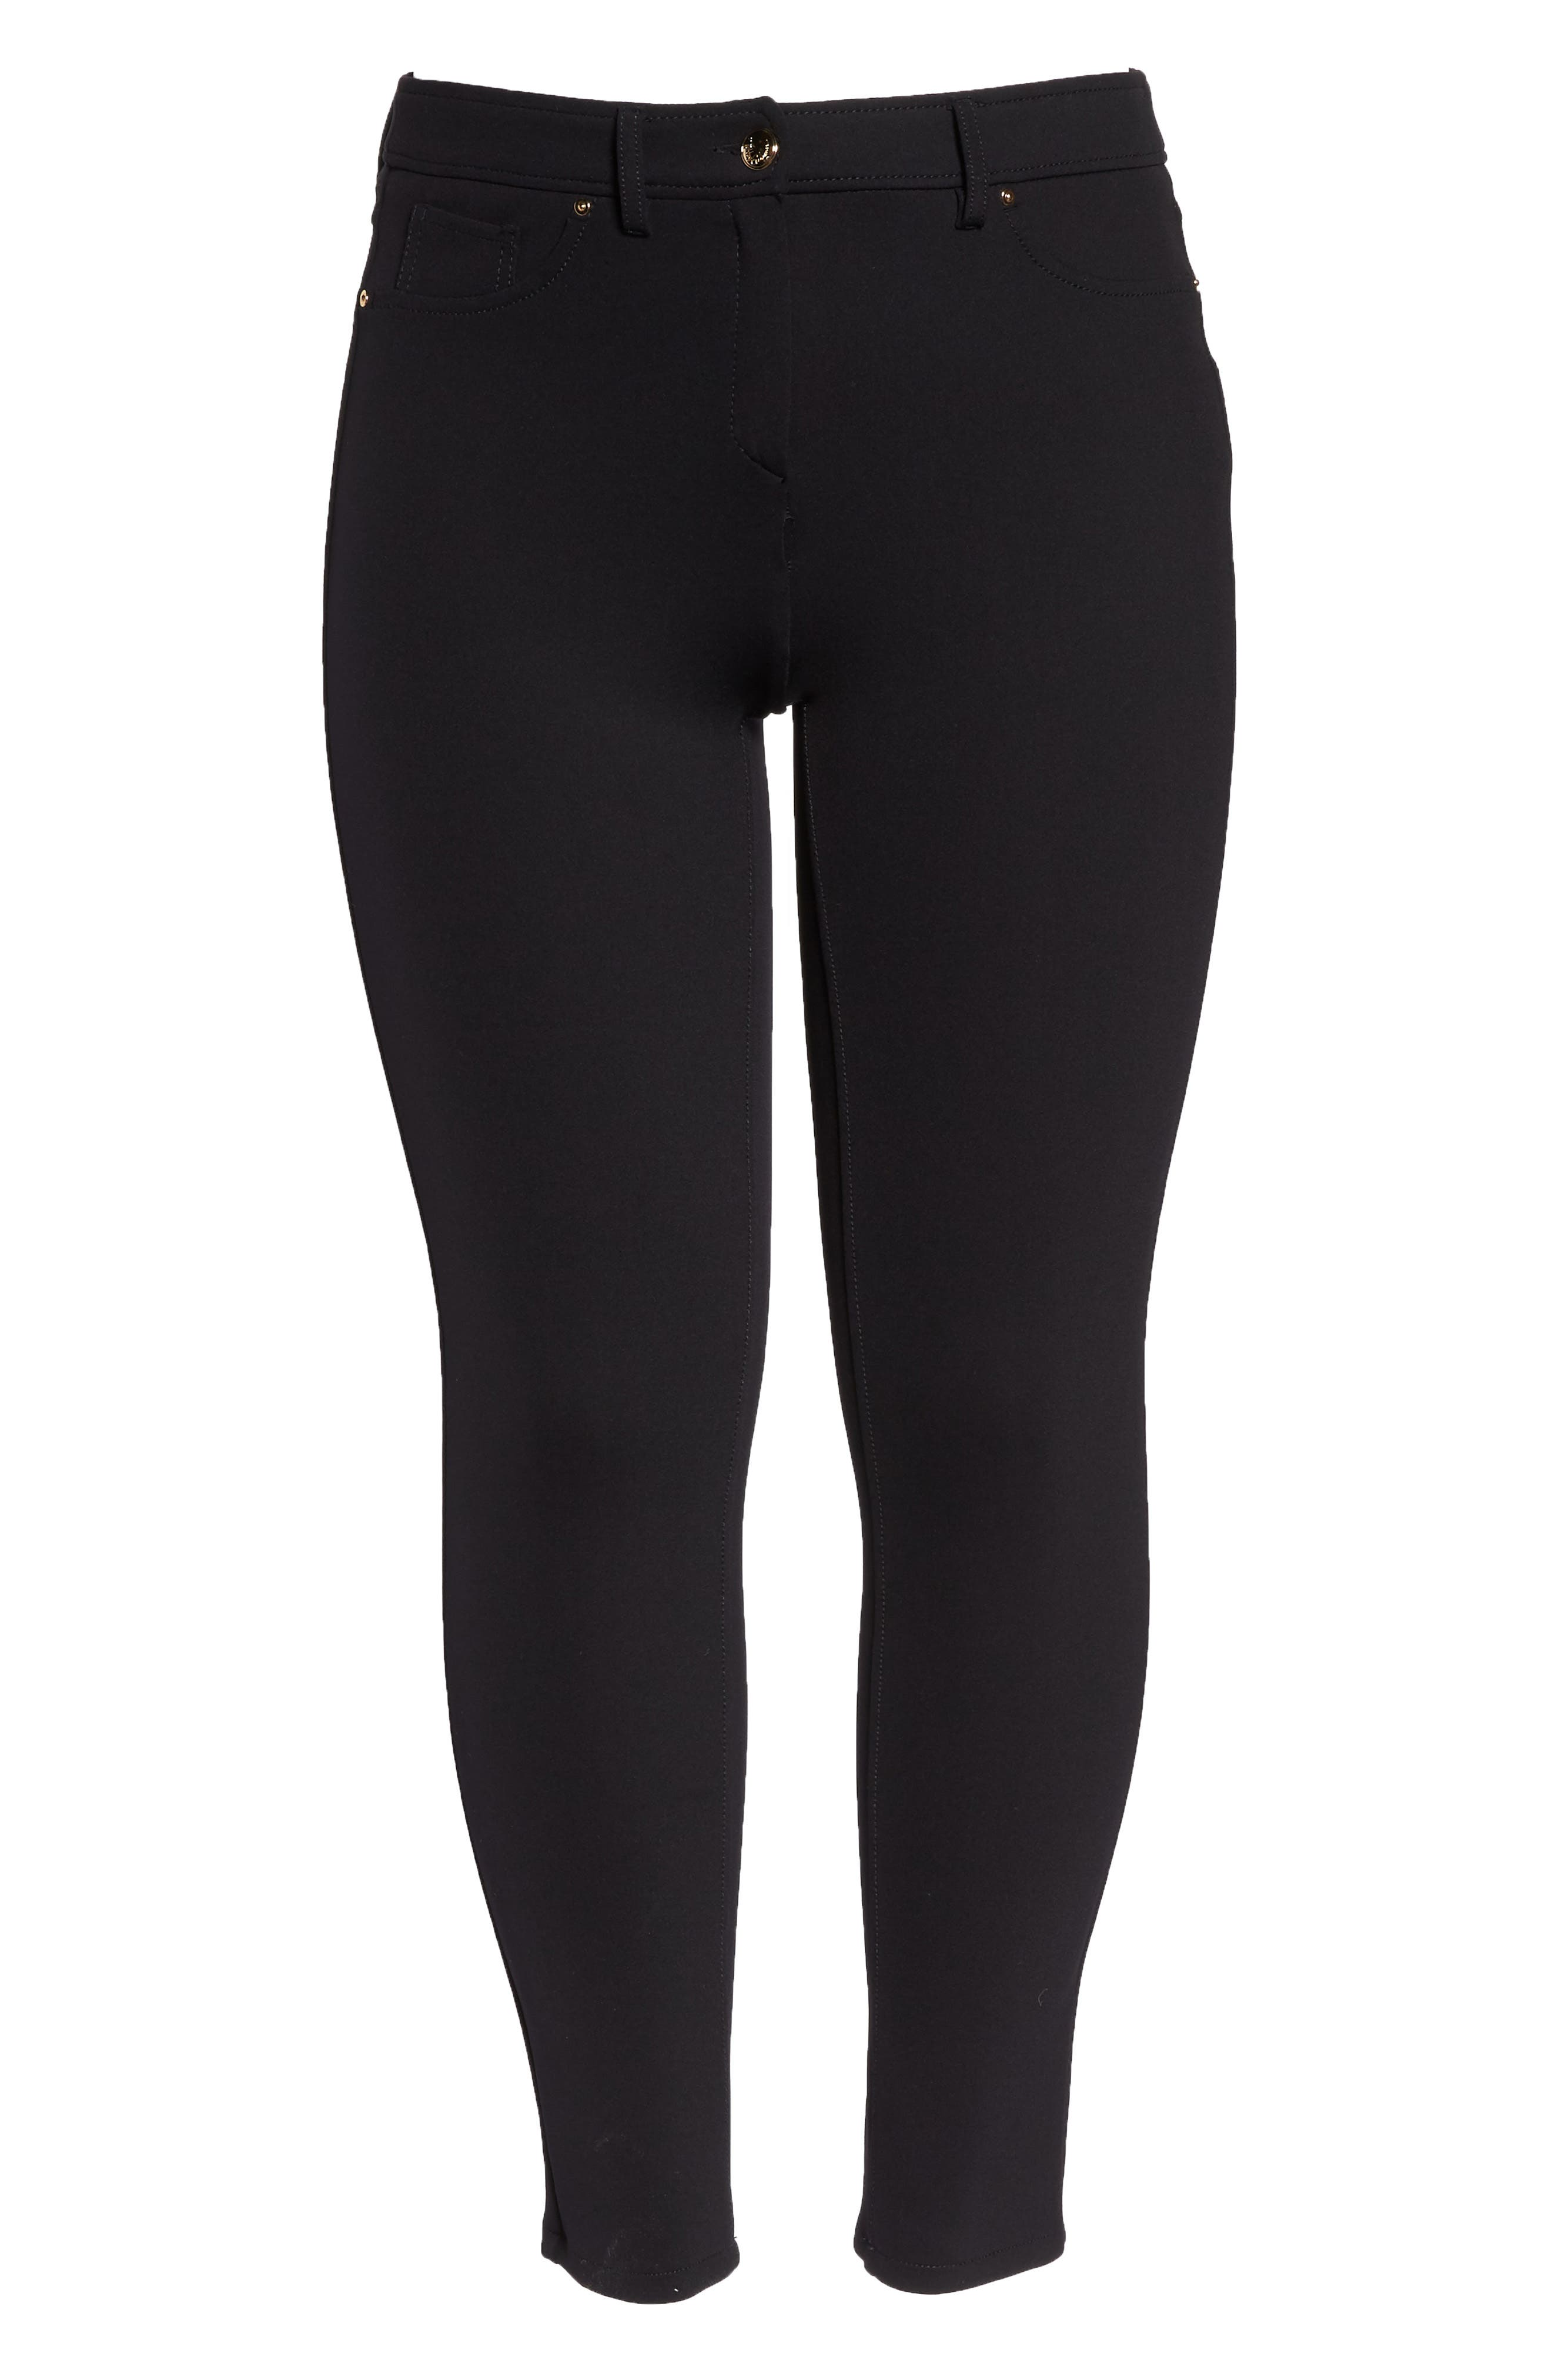 Odalisca Jersey Pants,                             Alternate thumbnail 6, color,                             Black